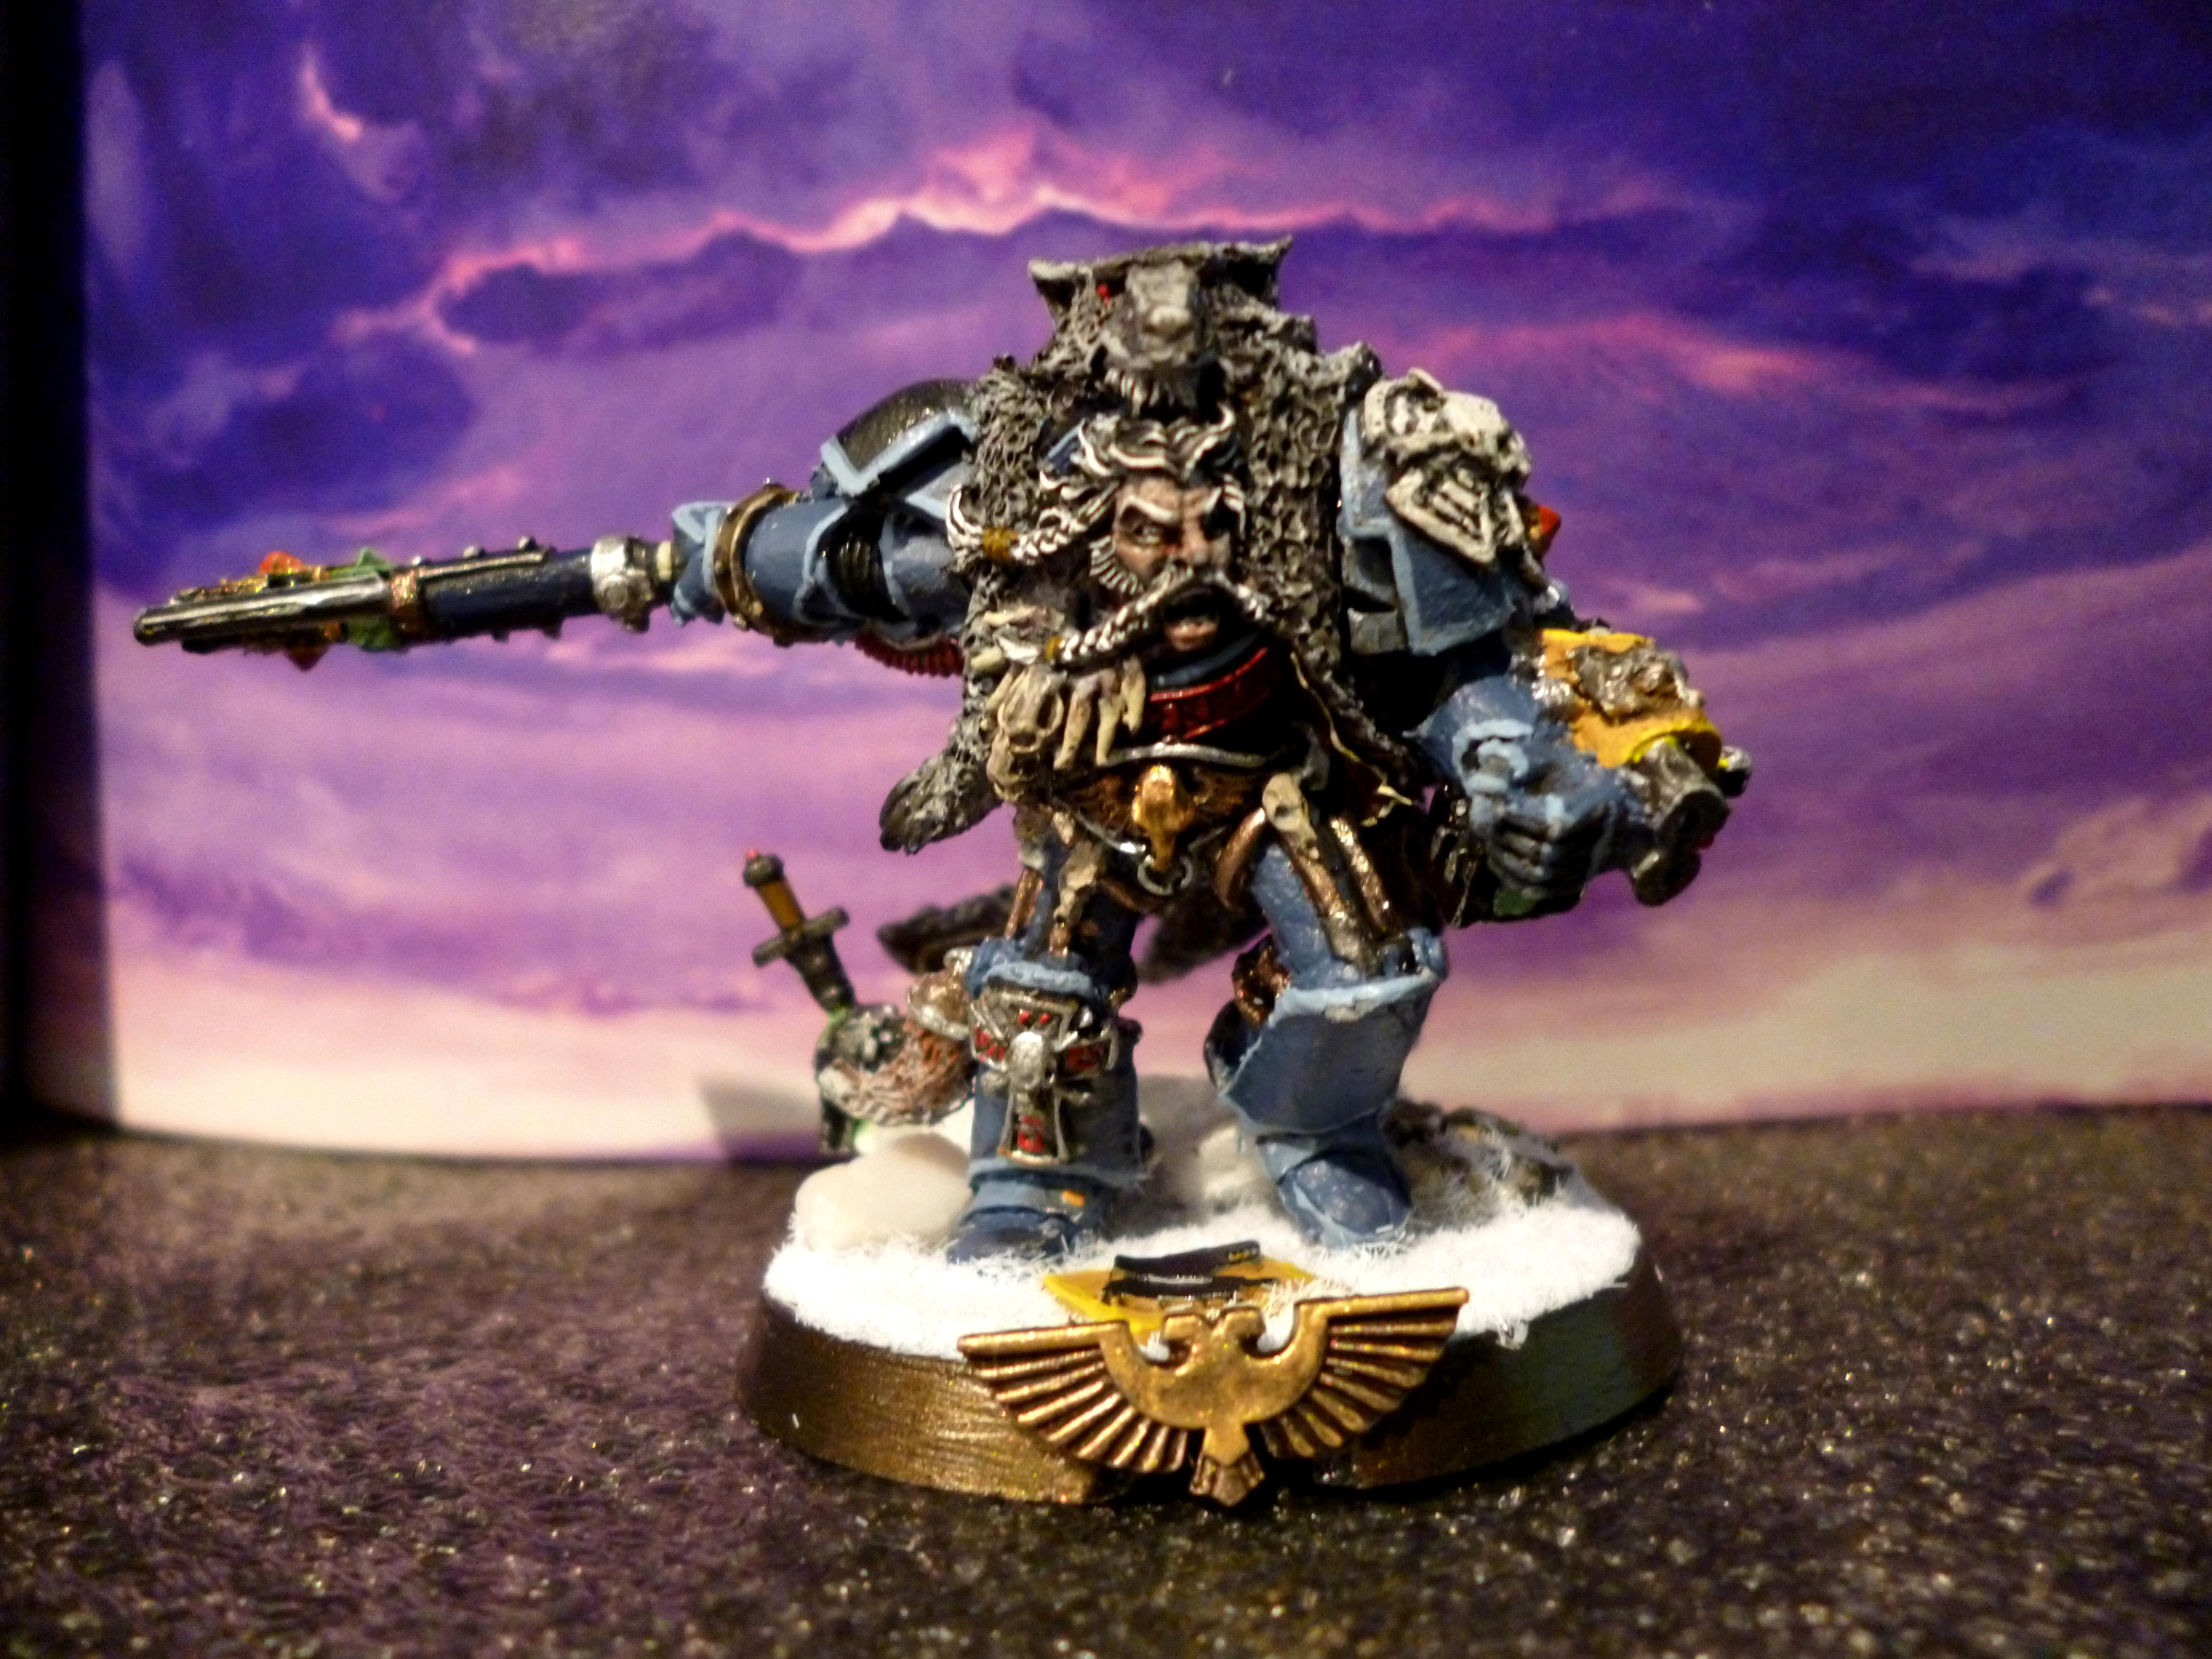 Headquarters, King, Logan Grimnar, Space Marines, Space Wolves, The Old Wolf